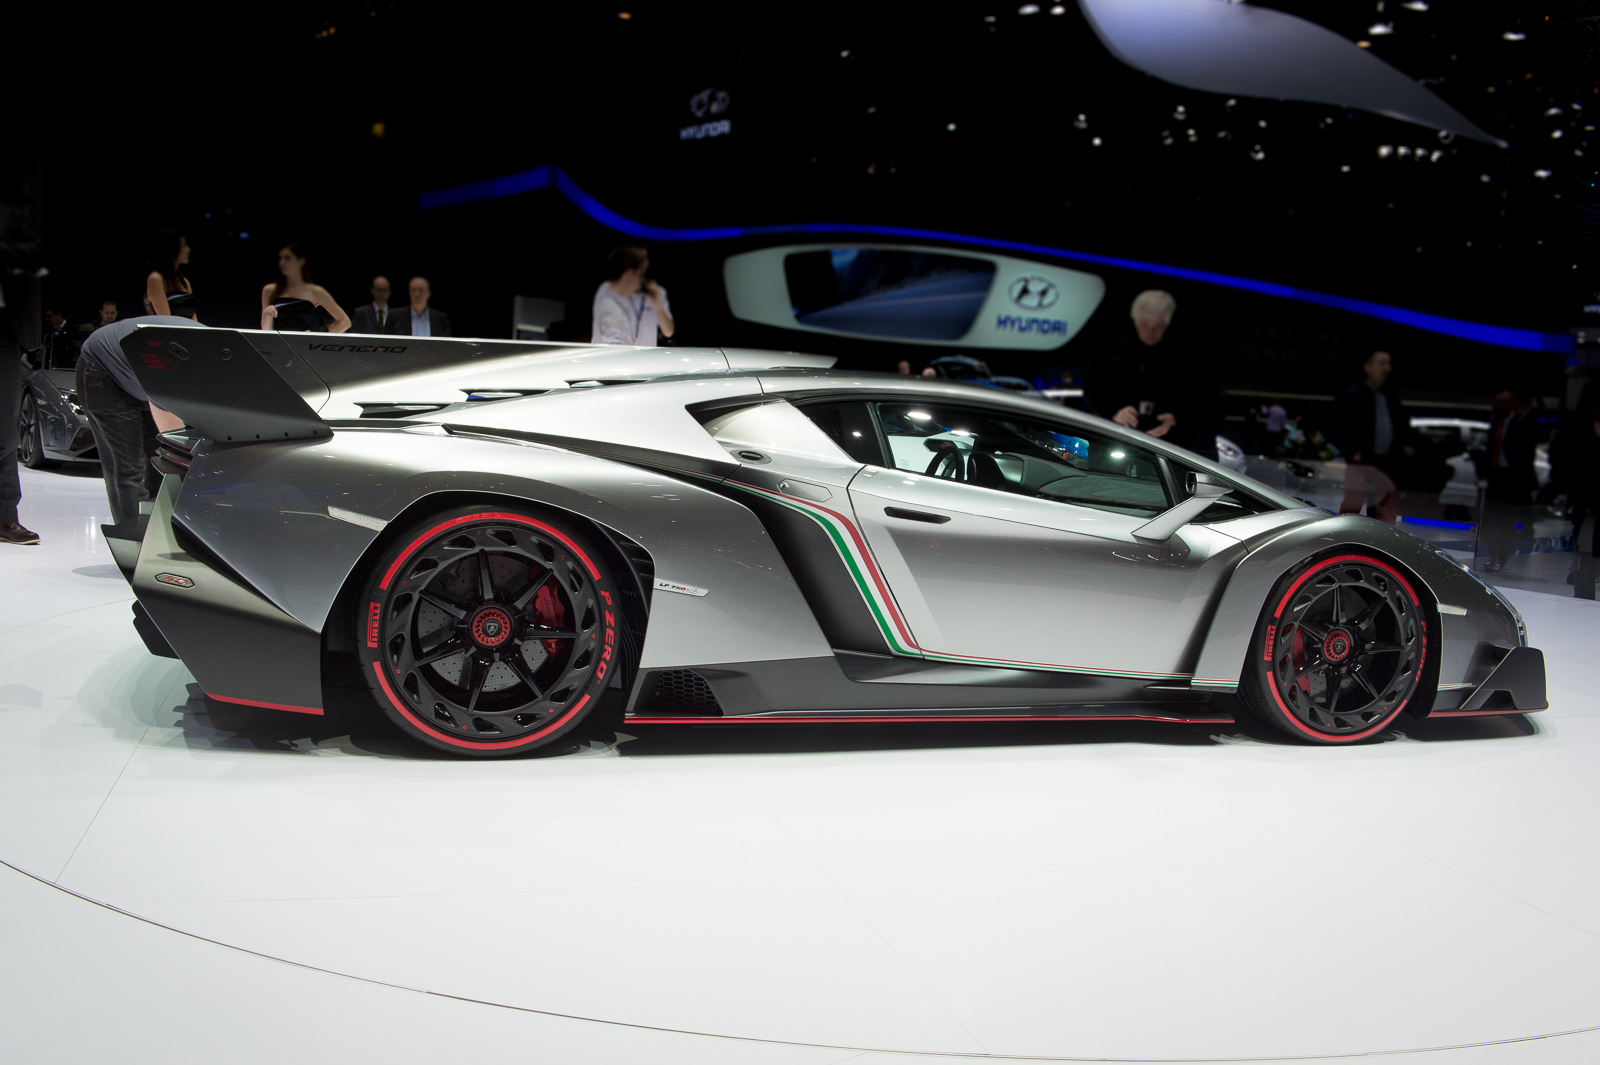 lamborghini veneno body kit lamborghini free engine image for user manual download. Black Bedroom Furniture Sets. Home Design Ideas